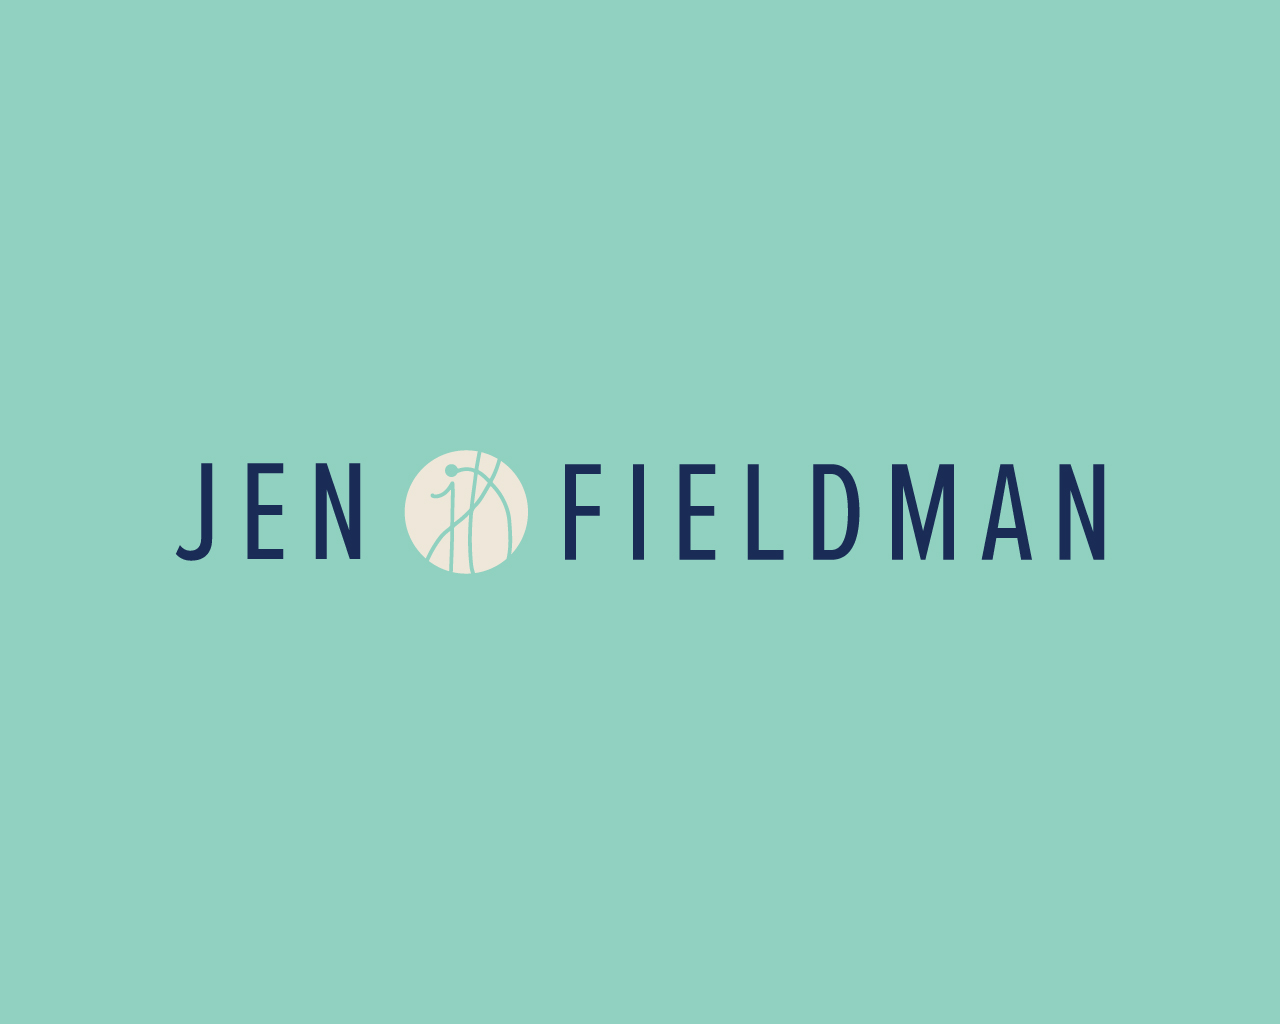 Jen FIeldman Logo Design for Marketing Strategist